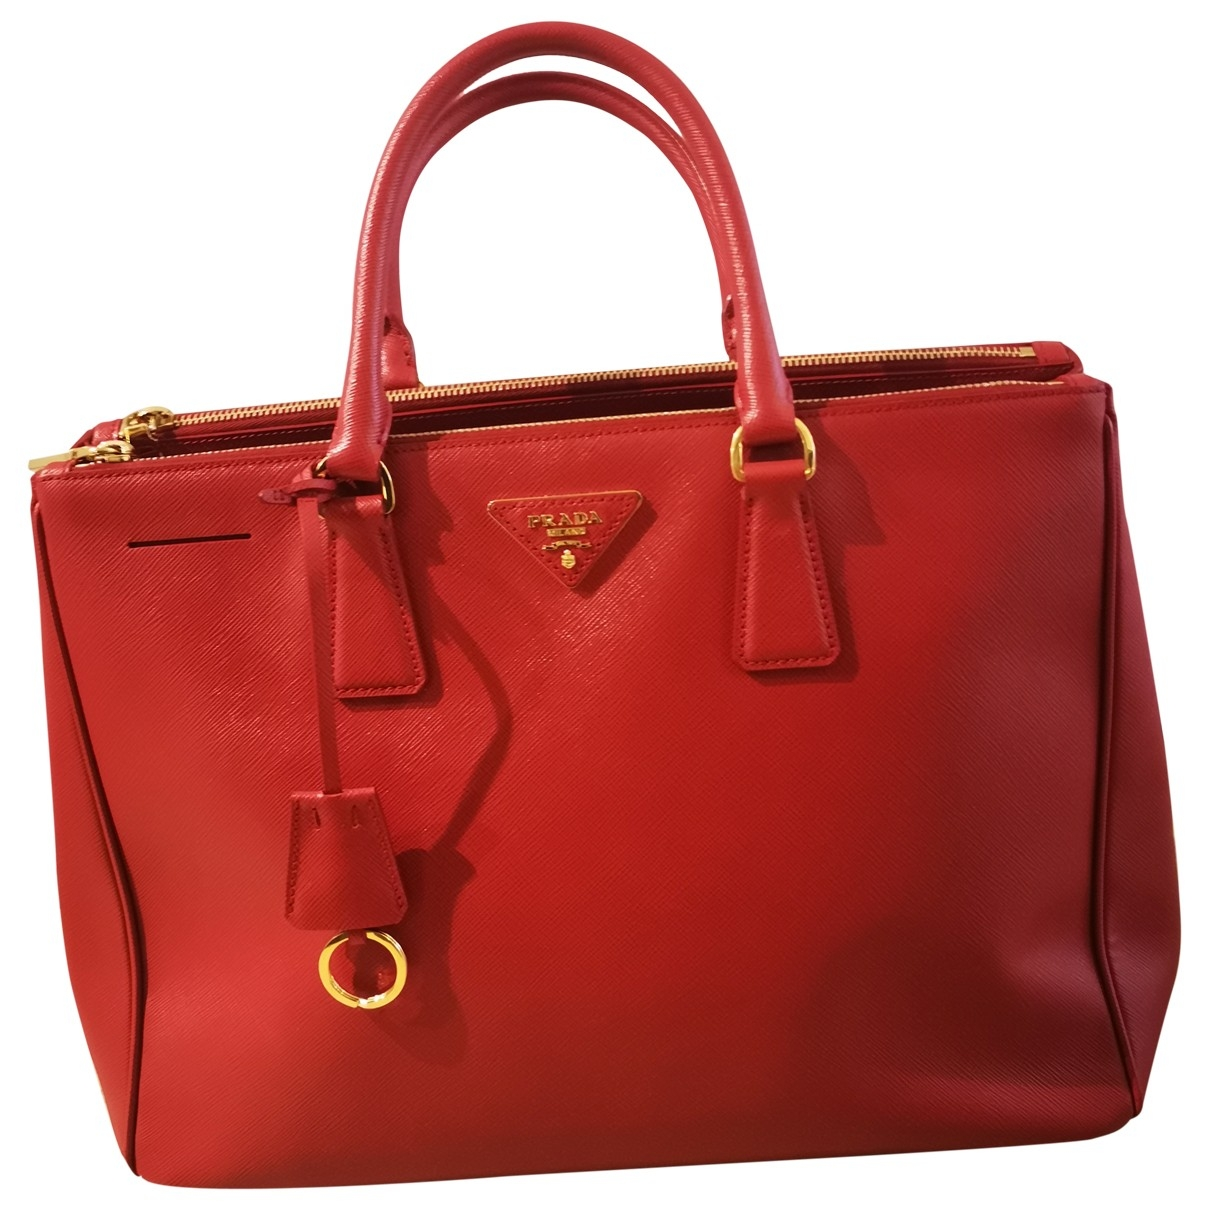 Prada saffiano  Red Leather handbag for Women \N